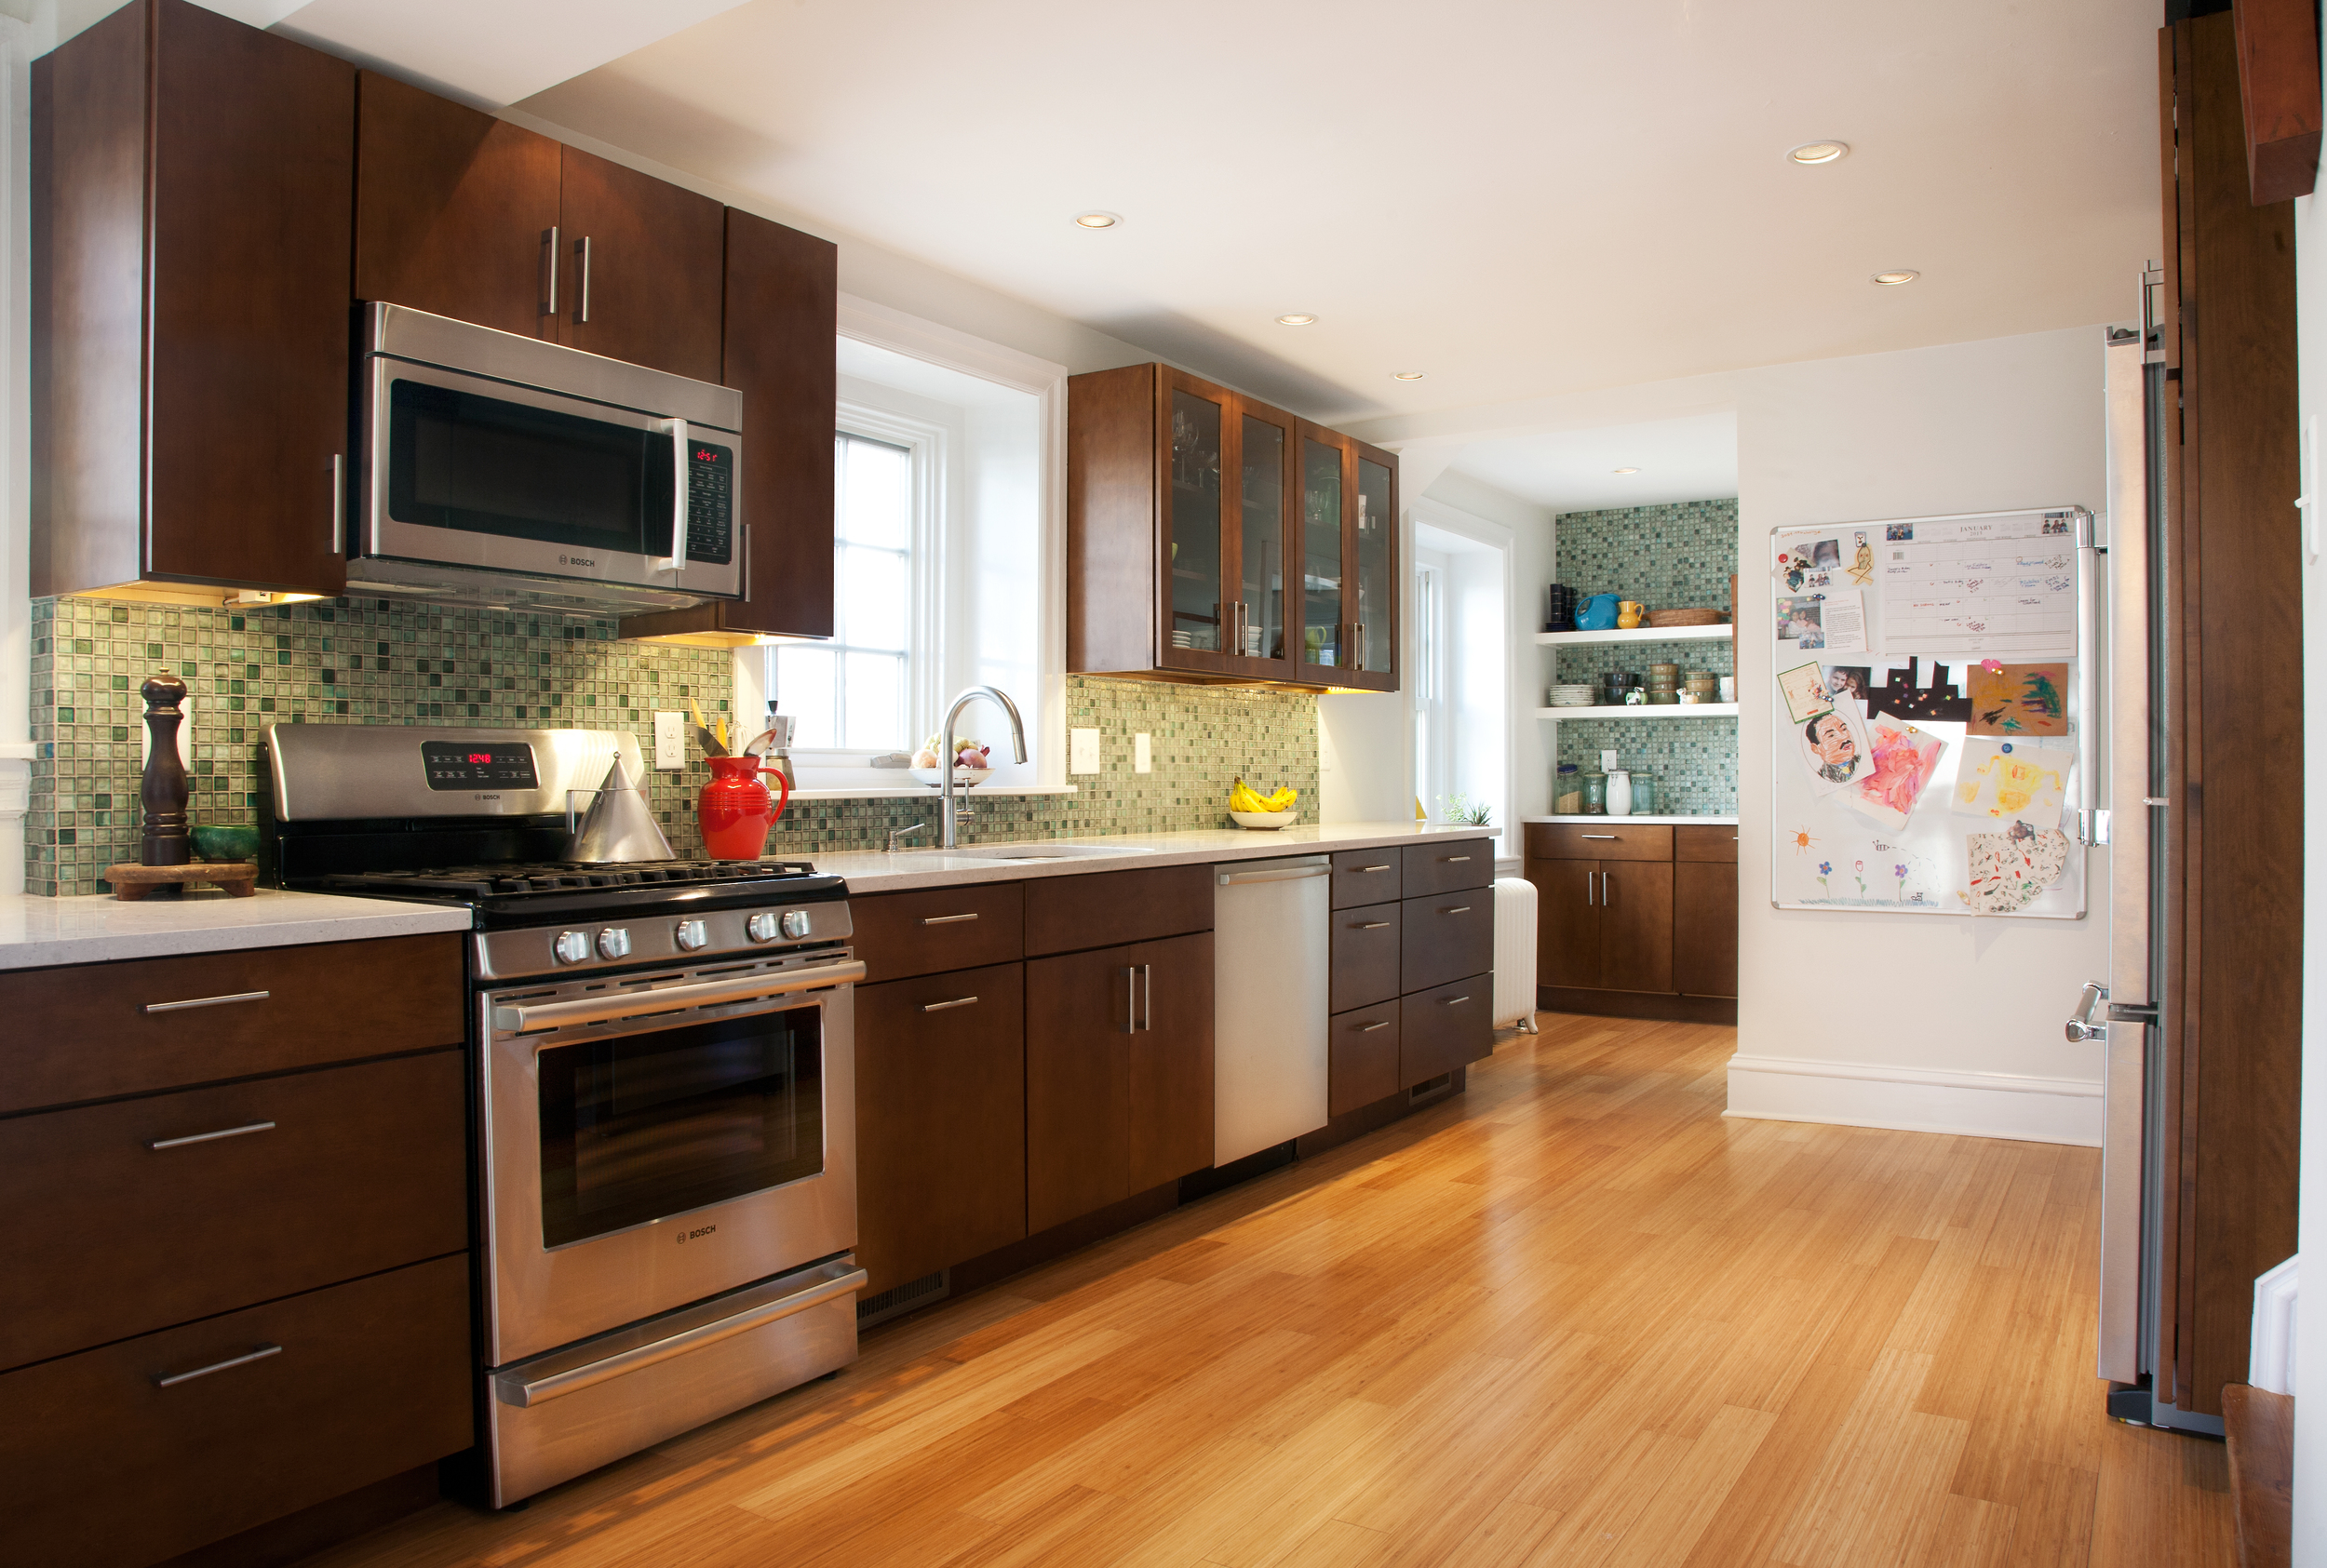 Lodges-kitchen-1.jpg